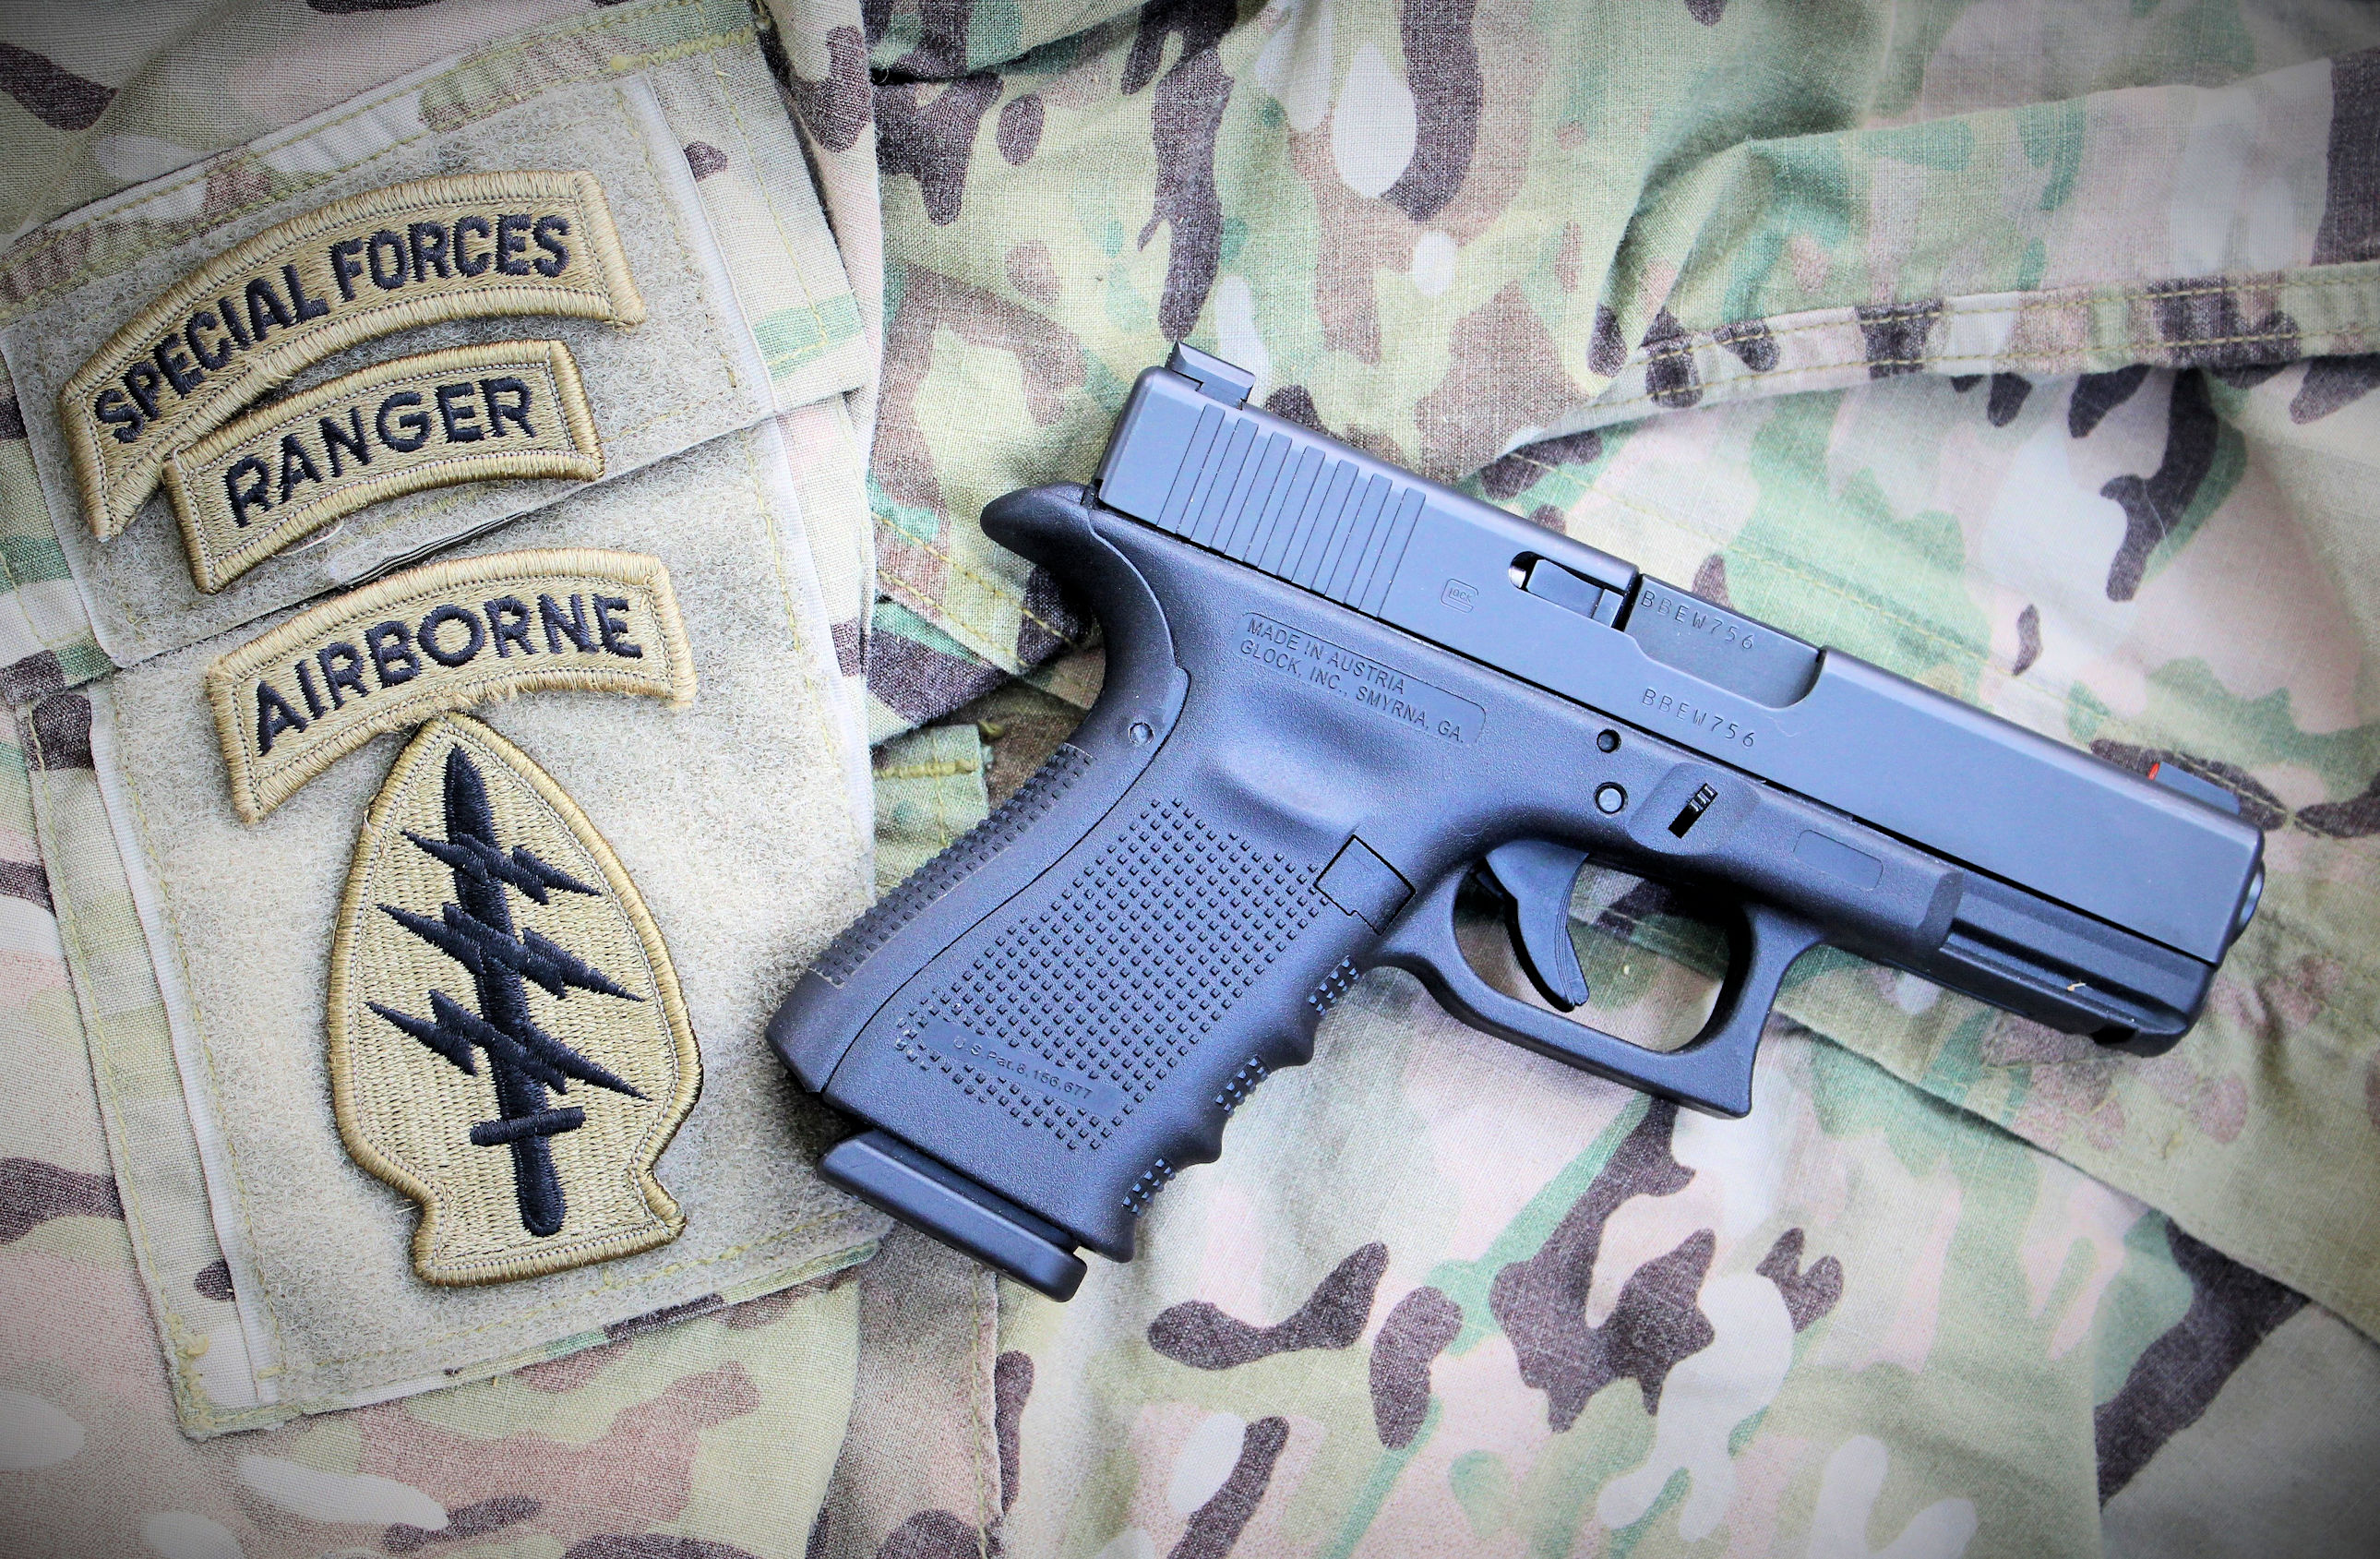 Glock 19 (G19) Compact 9mm Combat/Tactical Pistol: How and